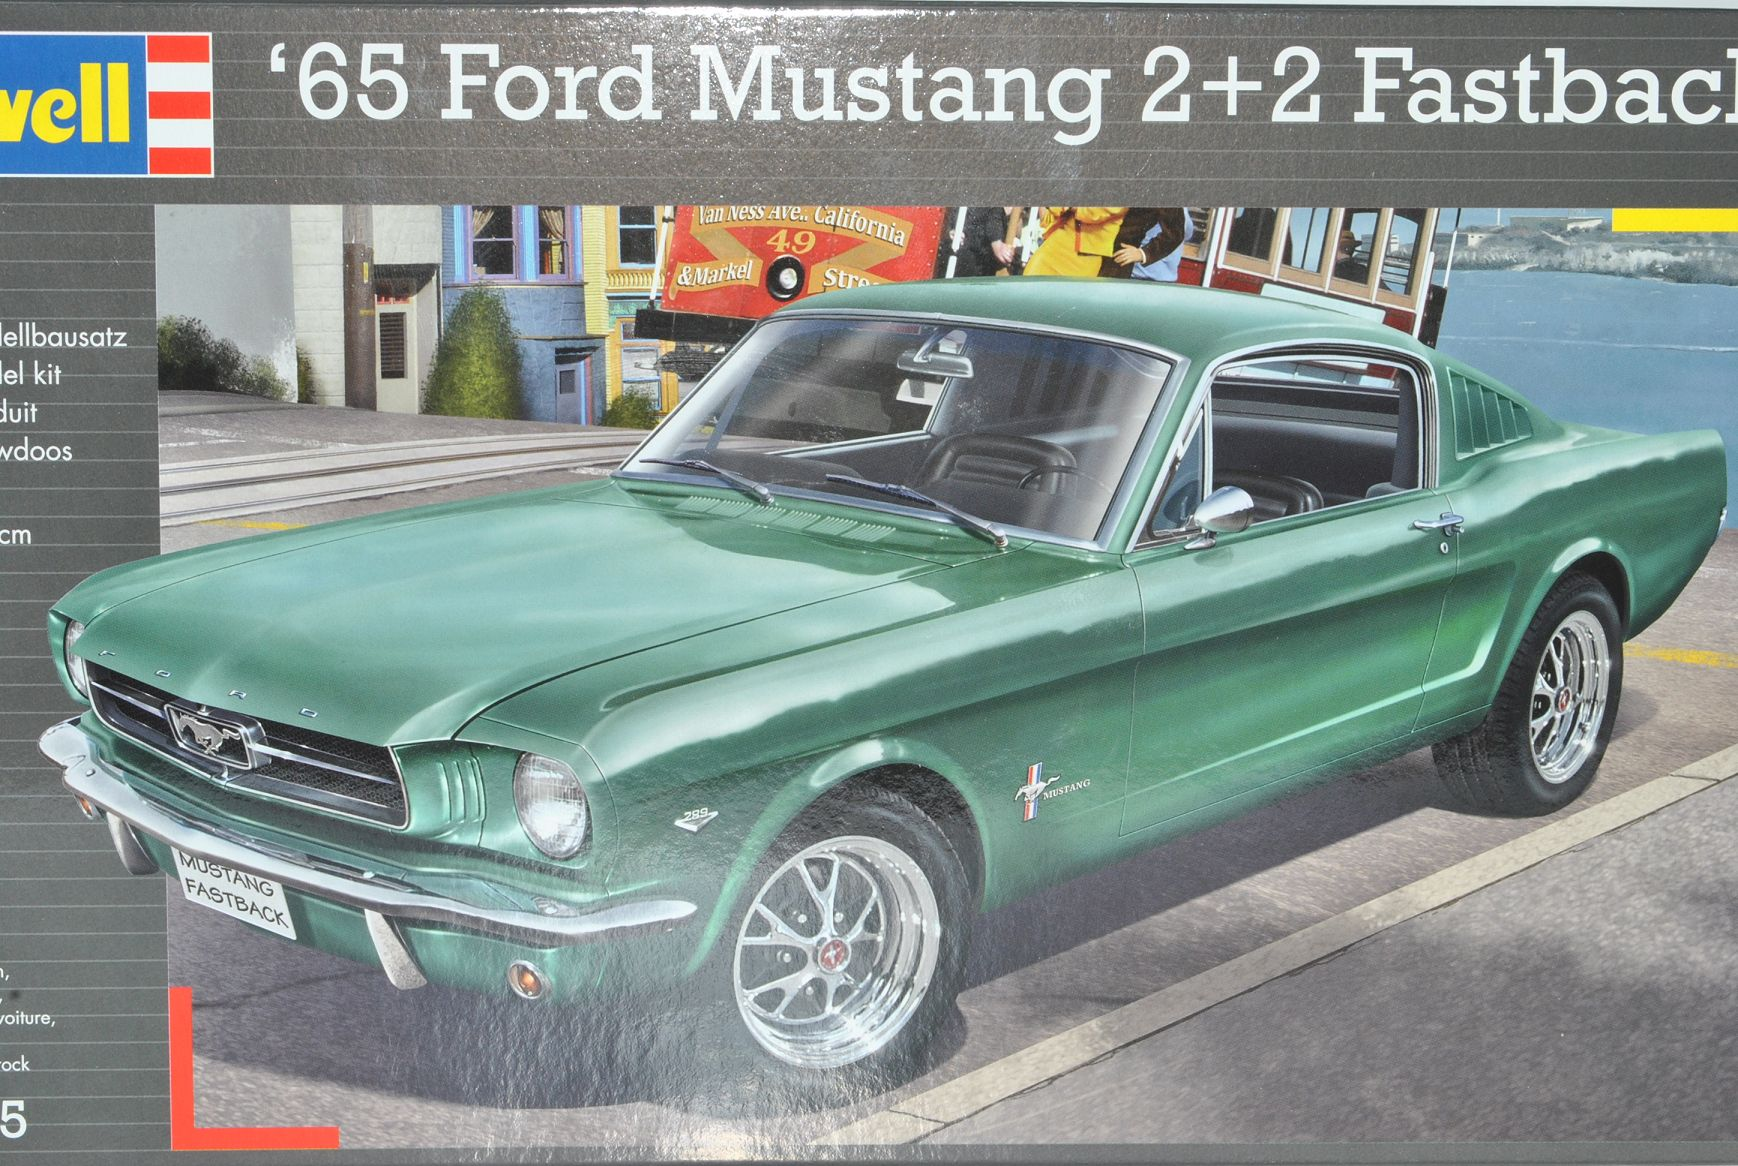 ford mustang coupe fastback 2 2 1965 07065 bausatz kit 1. Black Bedroom Furniture Sets. Home Design Ideas